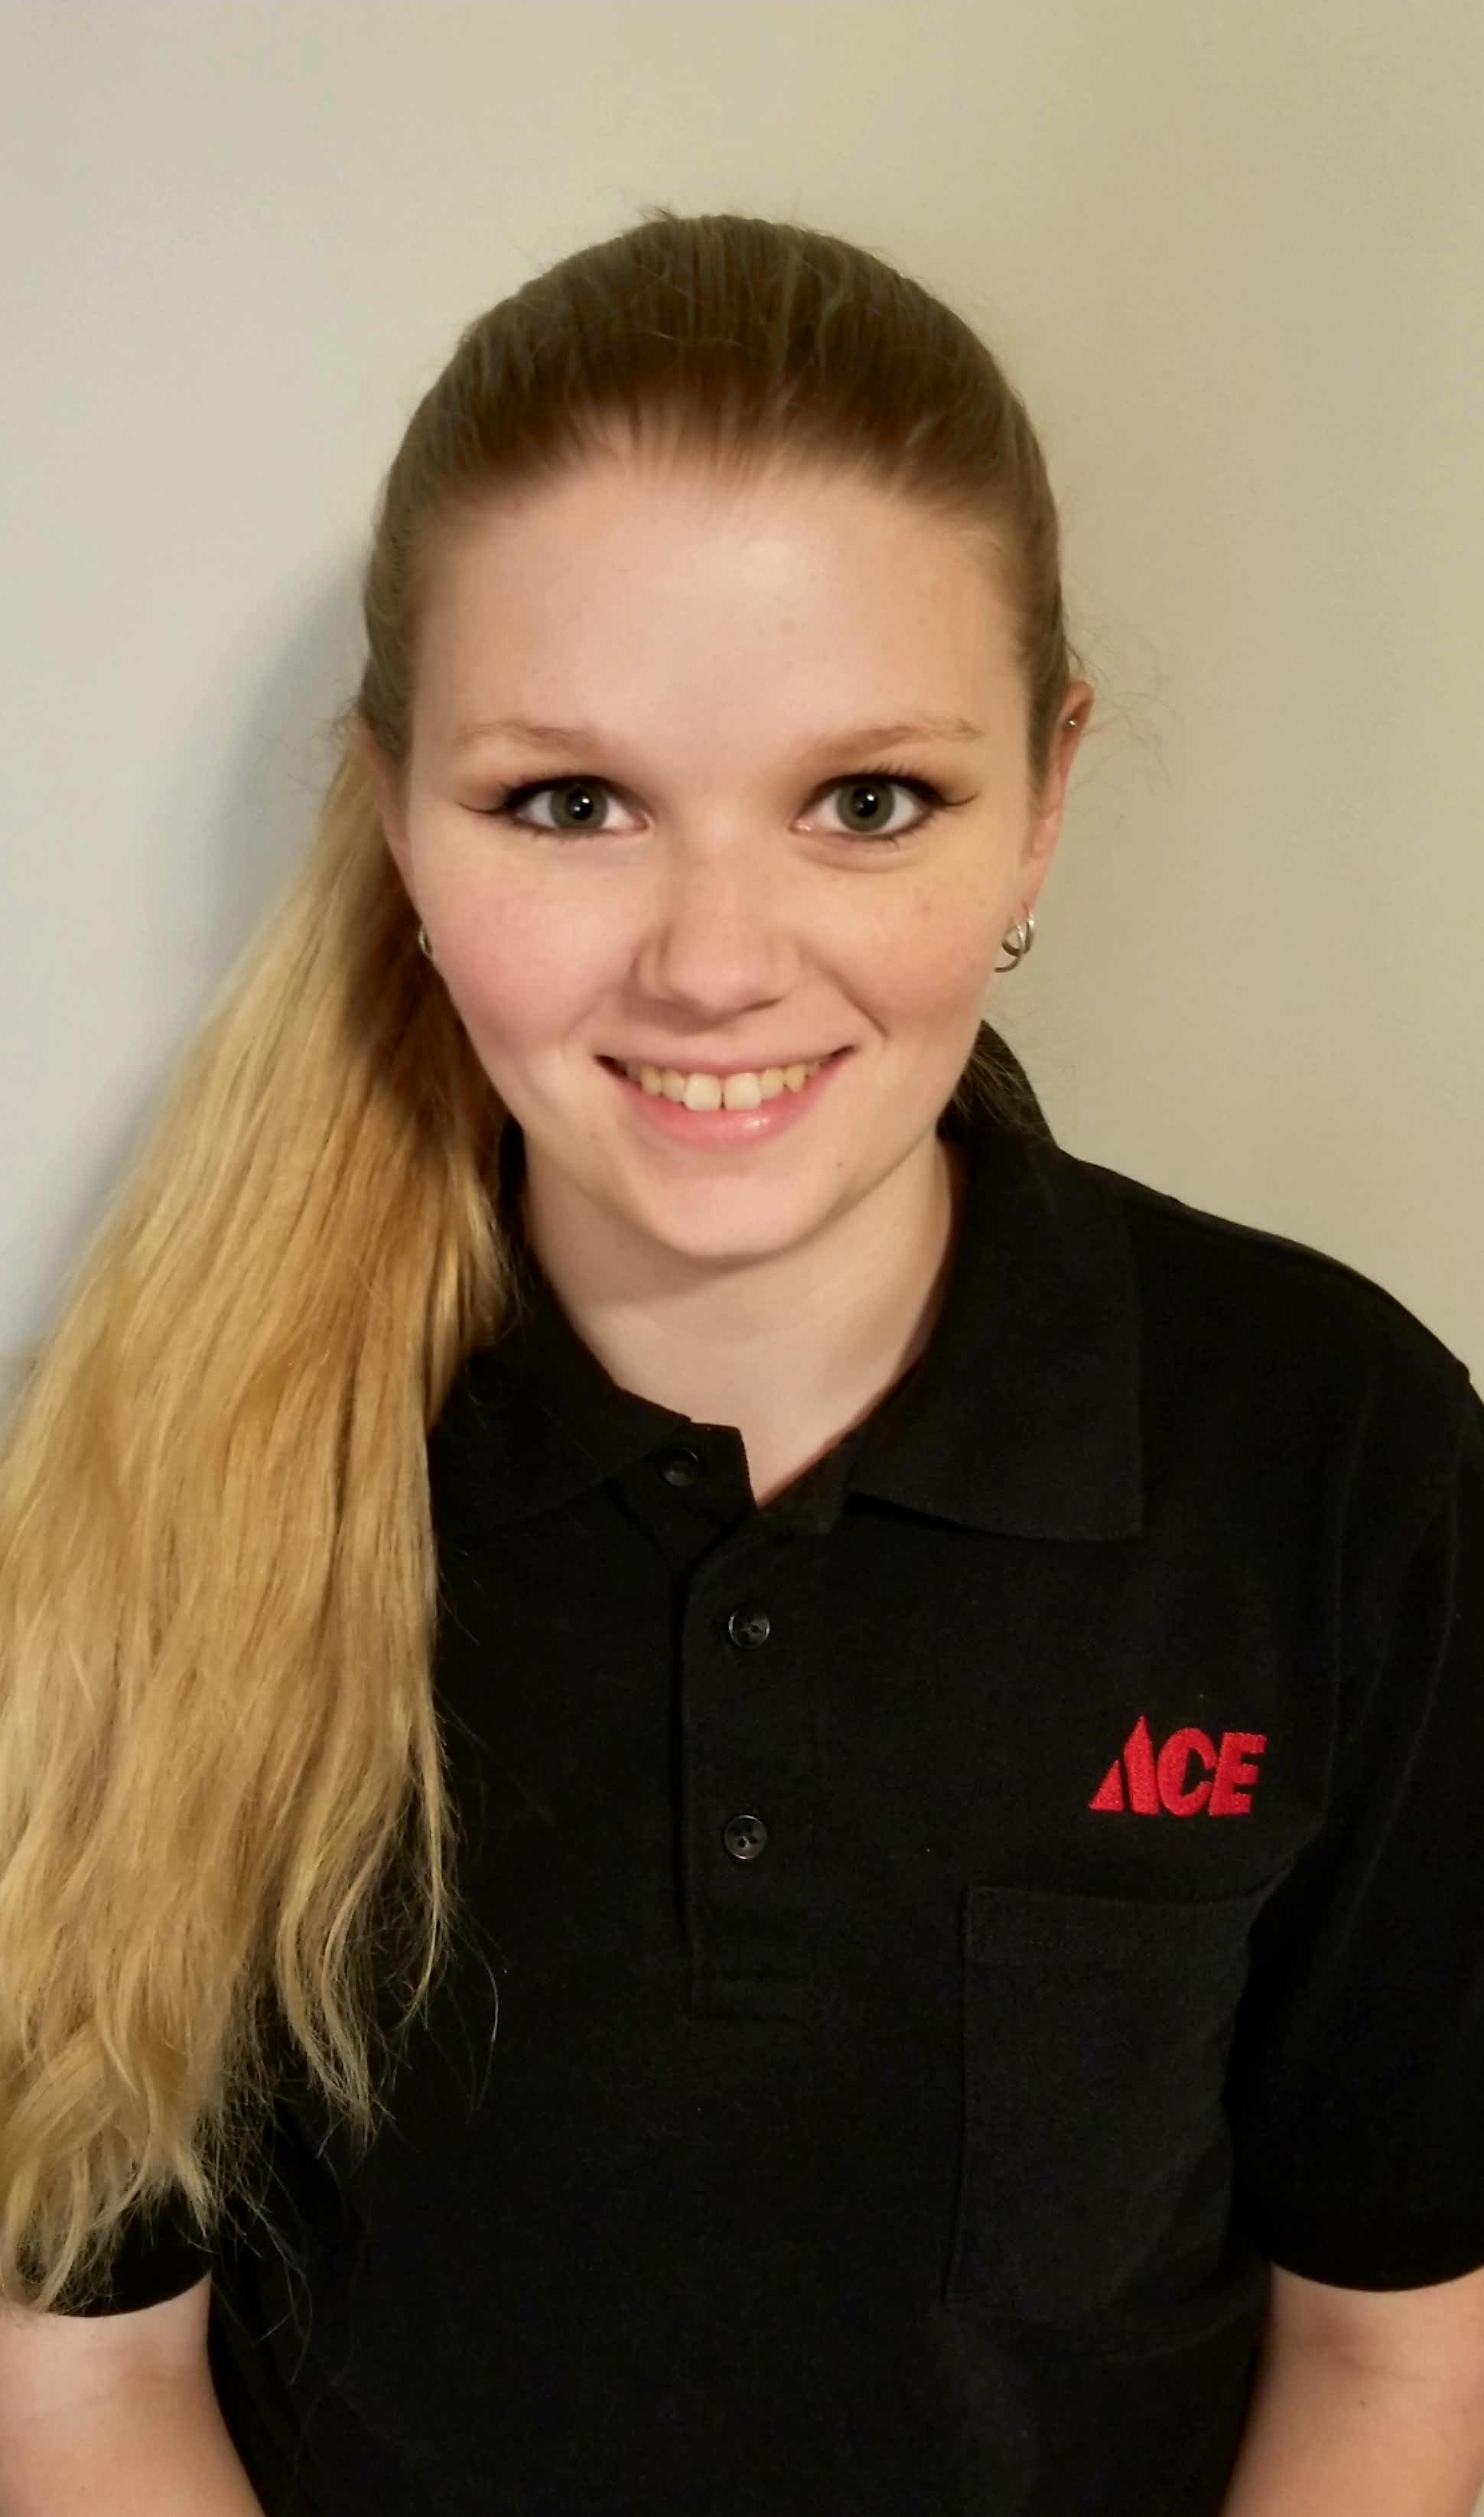 Adrienne Heflin - White House Store ManagerAdrienne has worked for Ace Hardware 9 years in all capacities of store operations. Promoted to store manager in 2015 with Tri-core Ace Hardware. She was retained as store manager in August 2017 when the chain was acquired by The Hardware Companies. She completed the Certified Helpful Ace Management Program (CHAMP).